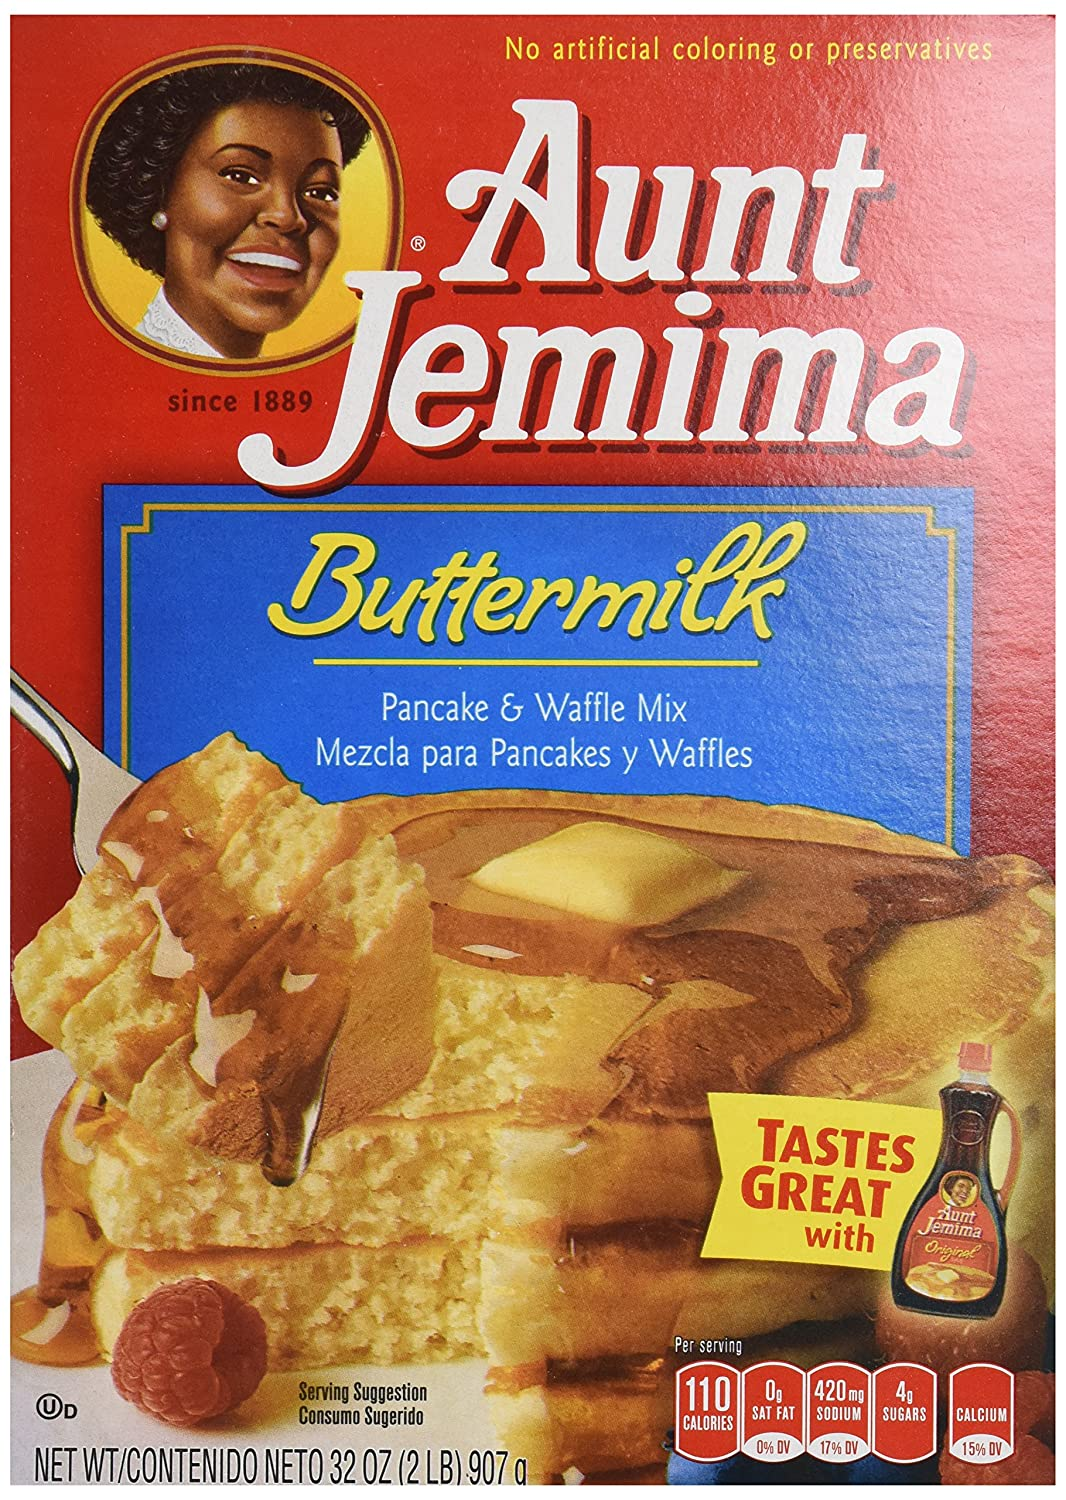 Amazon.com : Aunt Jemima Buttermilk Pancake & Waffle Mix 32 oz : Grocery & Gourmet Food